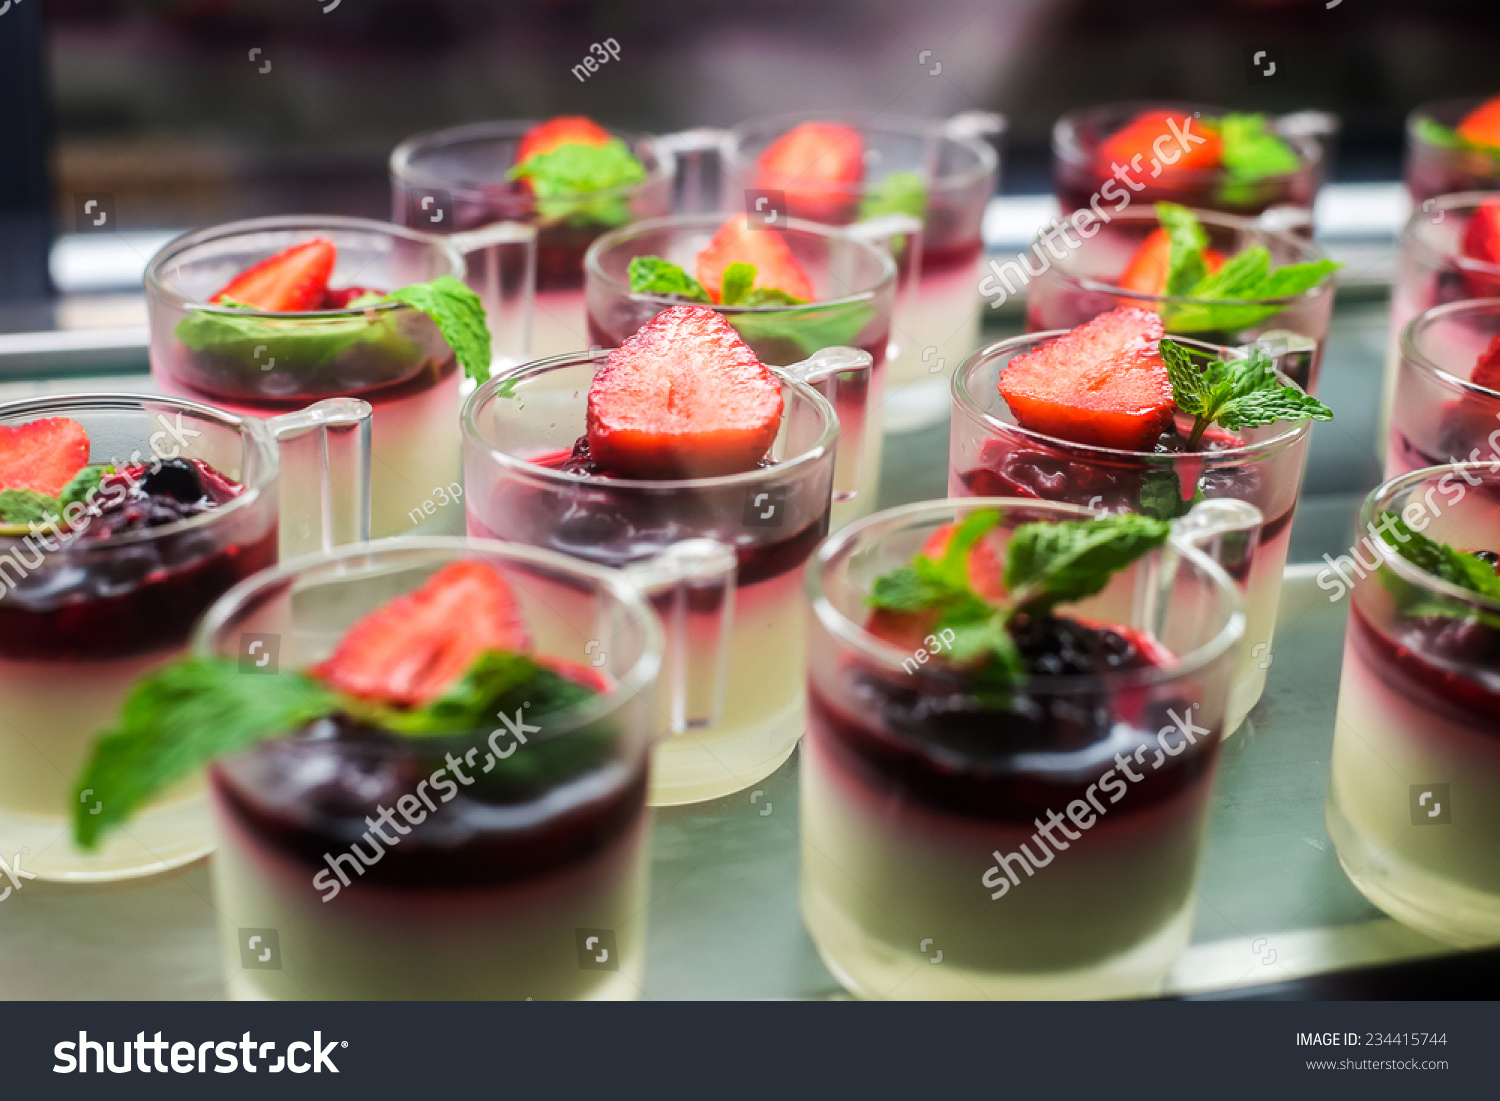 Dessert canape stock photo 234415744 shutterstock for Canape desserts